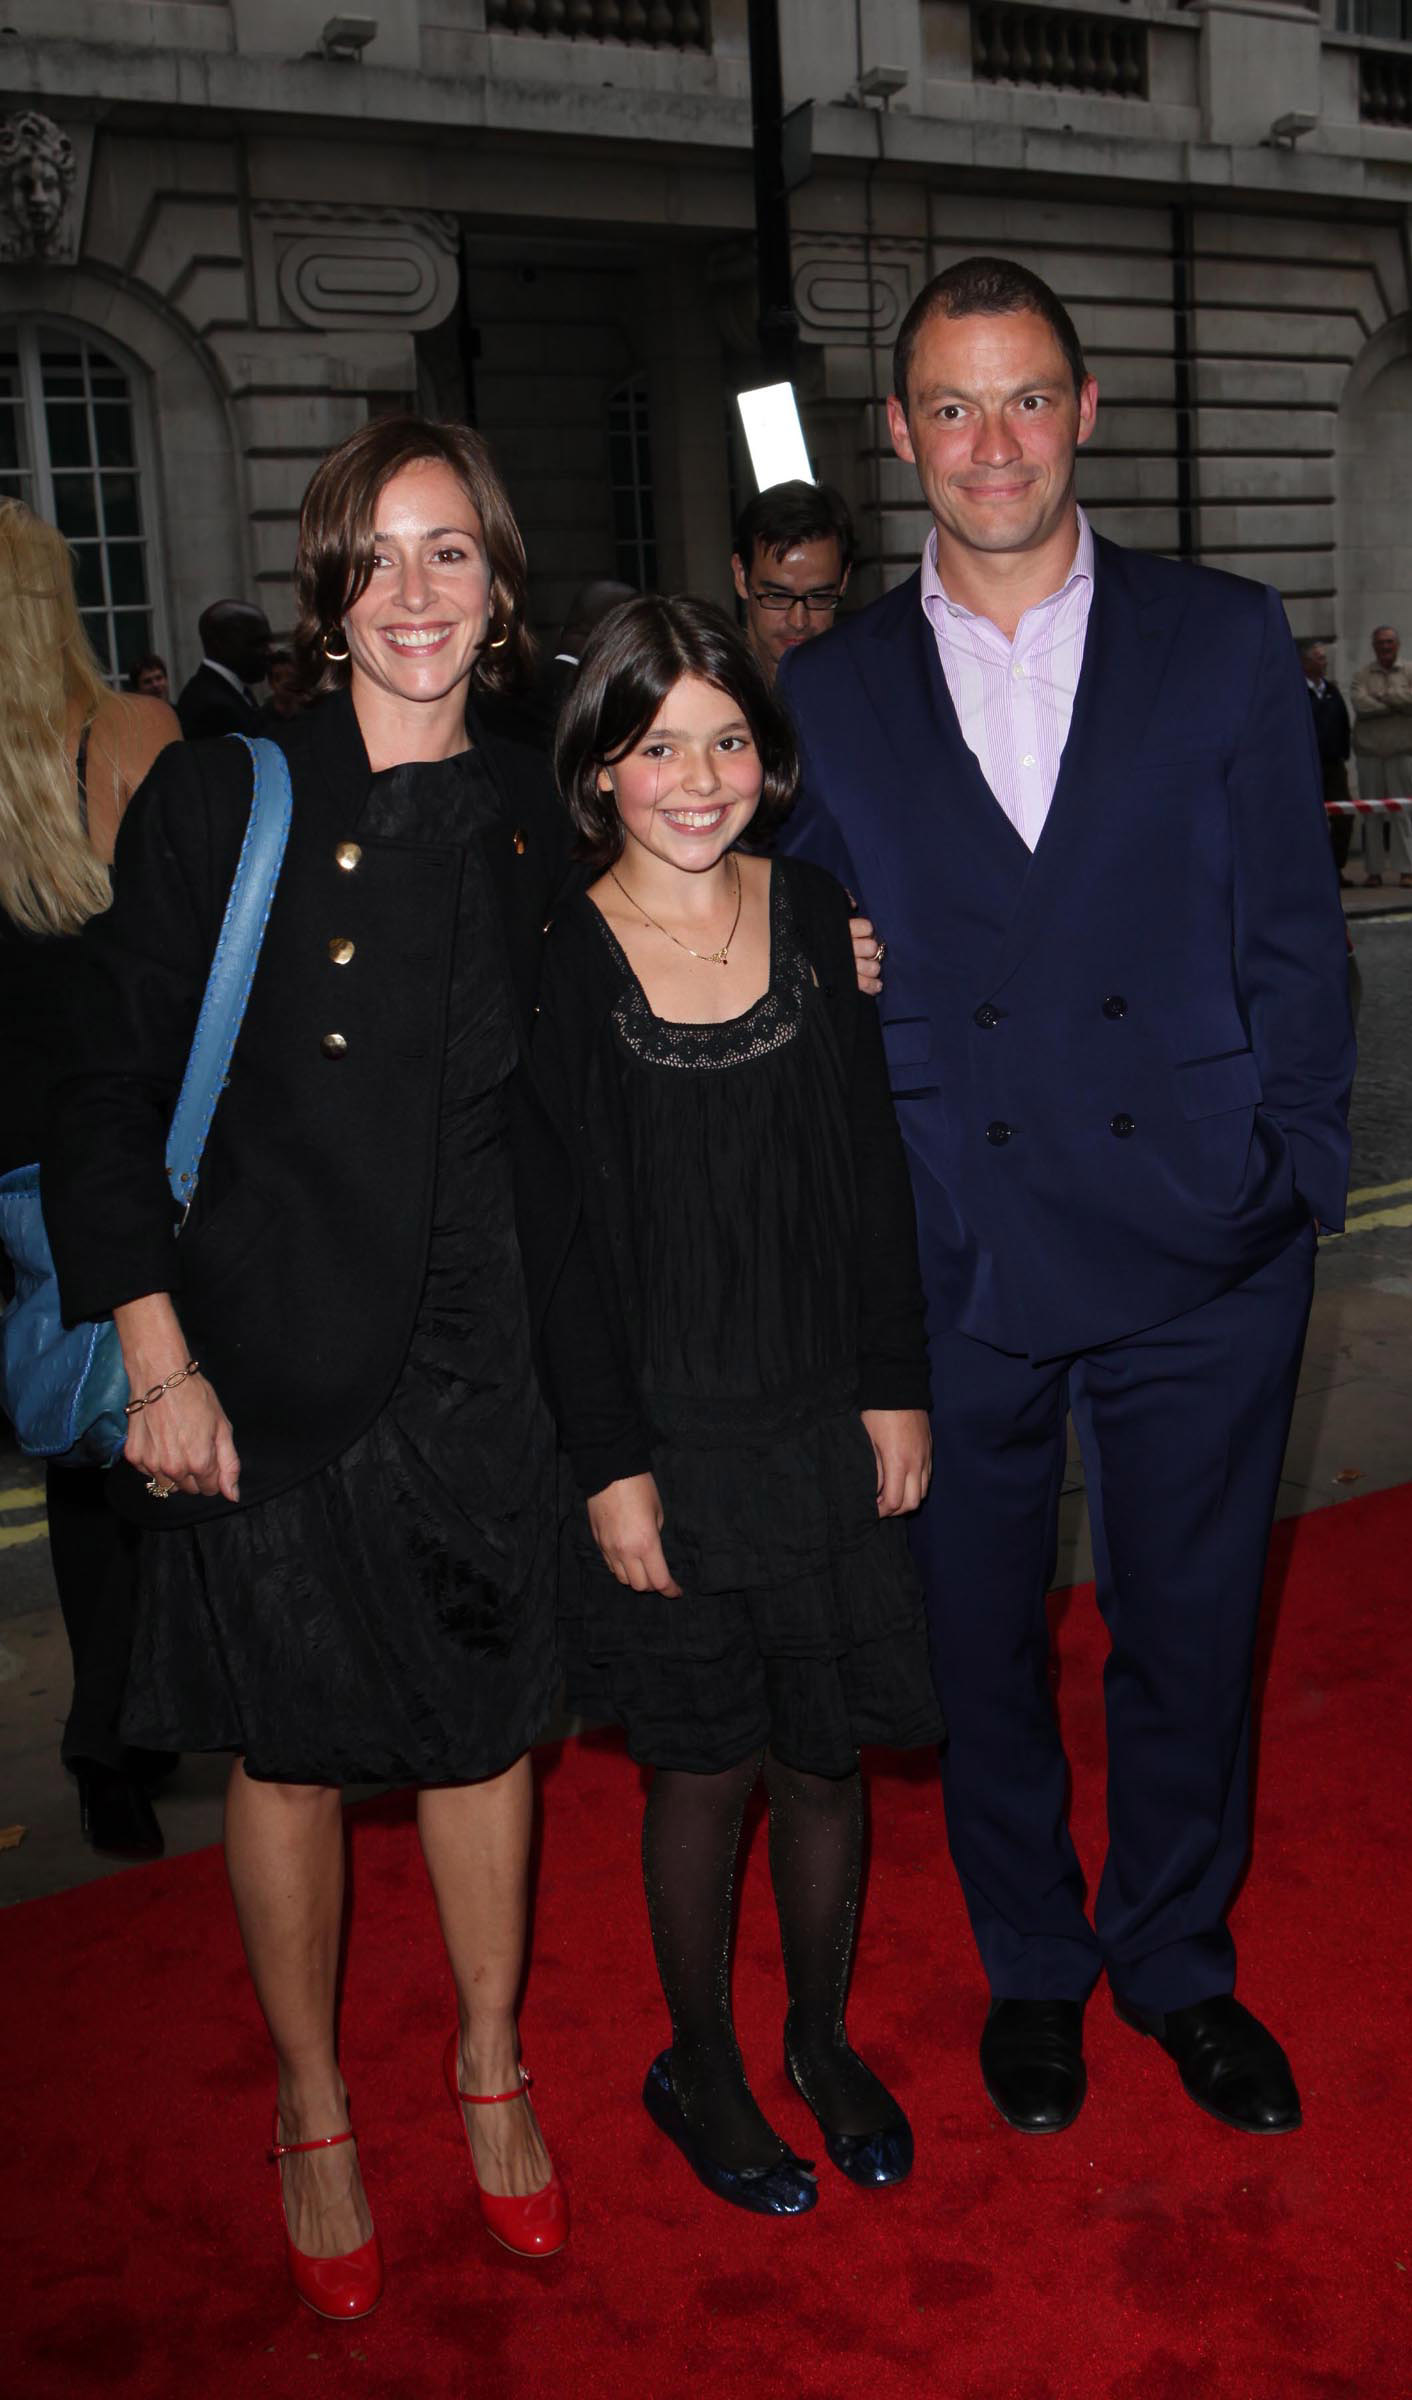 Polly Astor, Martha West and Dominic West  attends the UK Premiere of 'Creation' on September 13, 2009 in London, England.